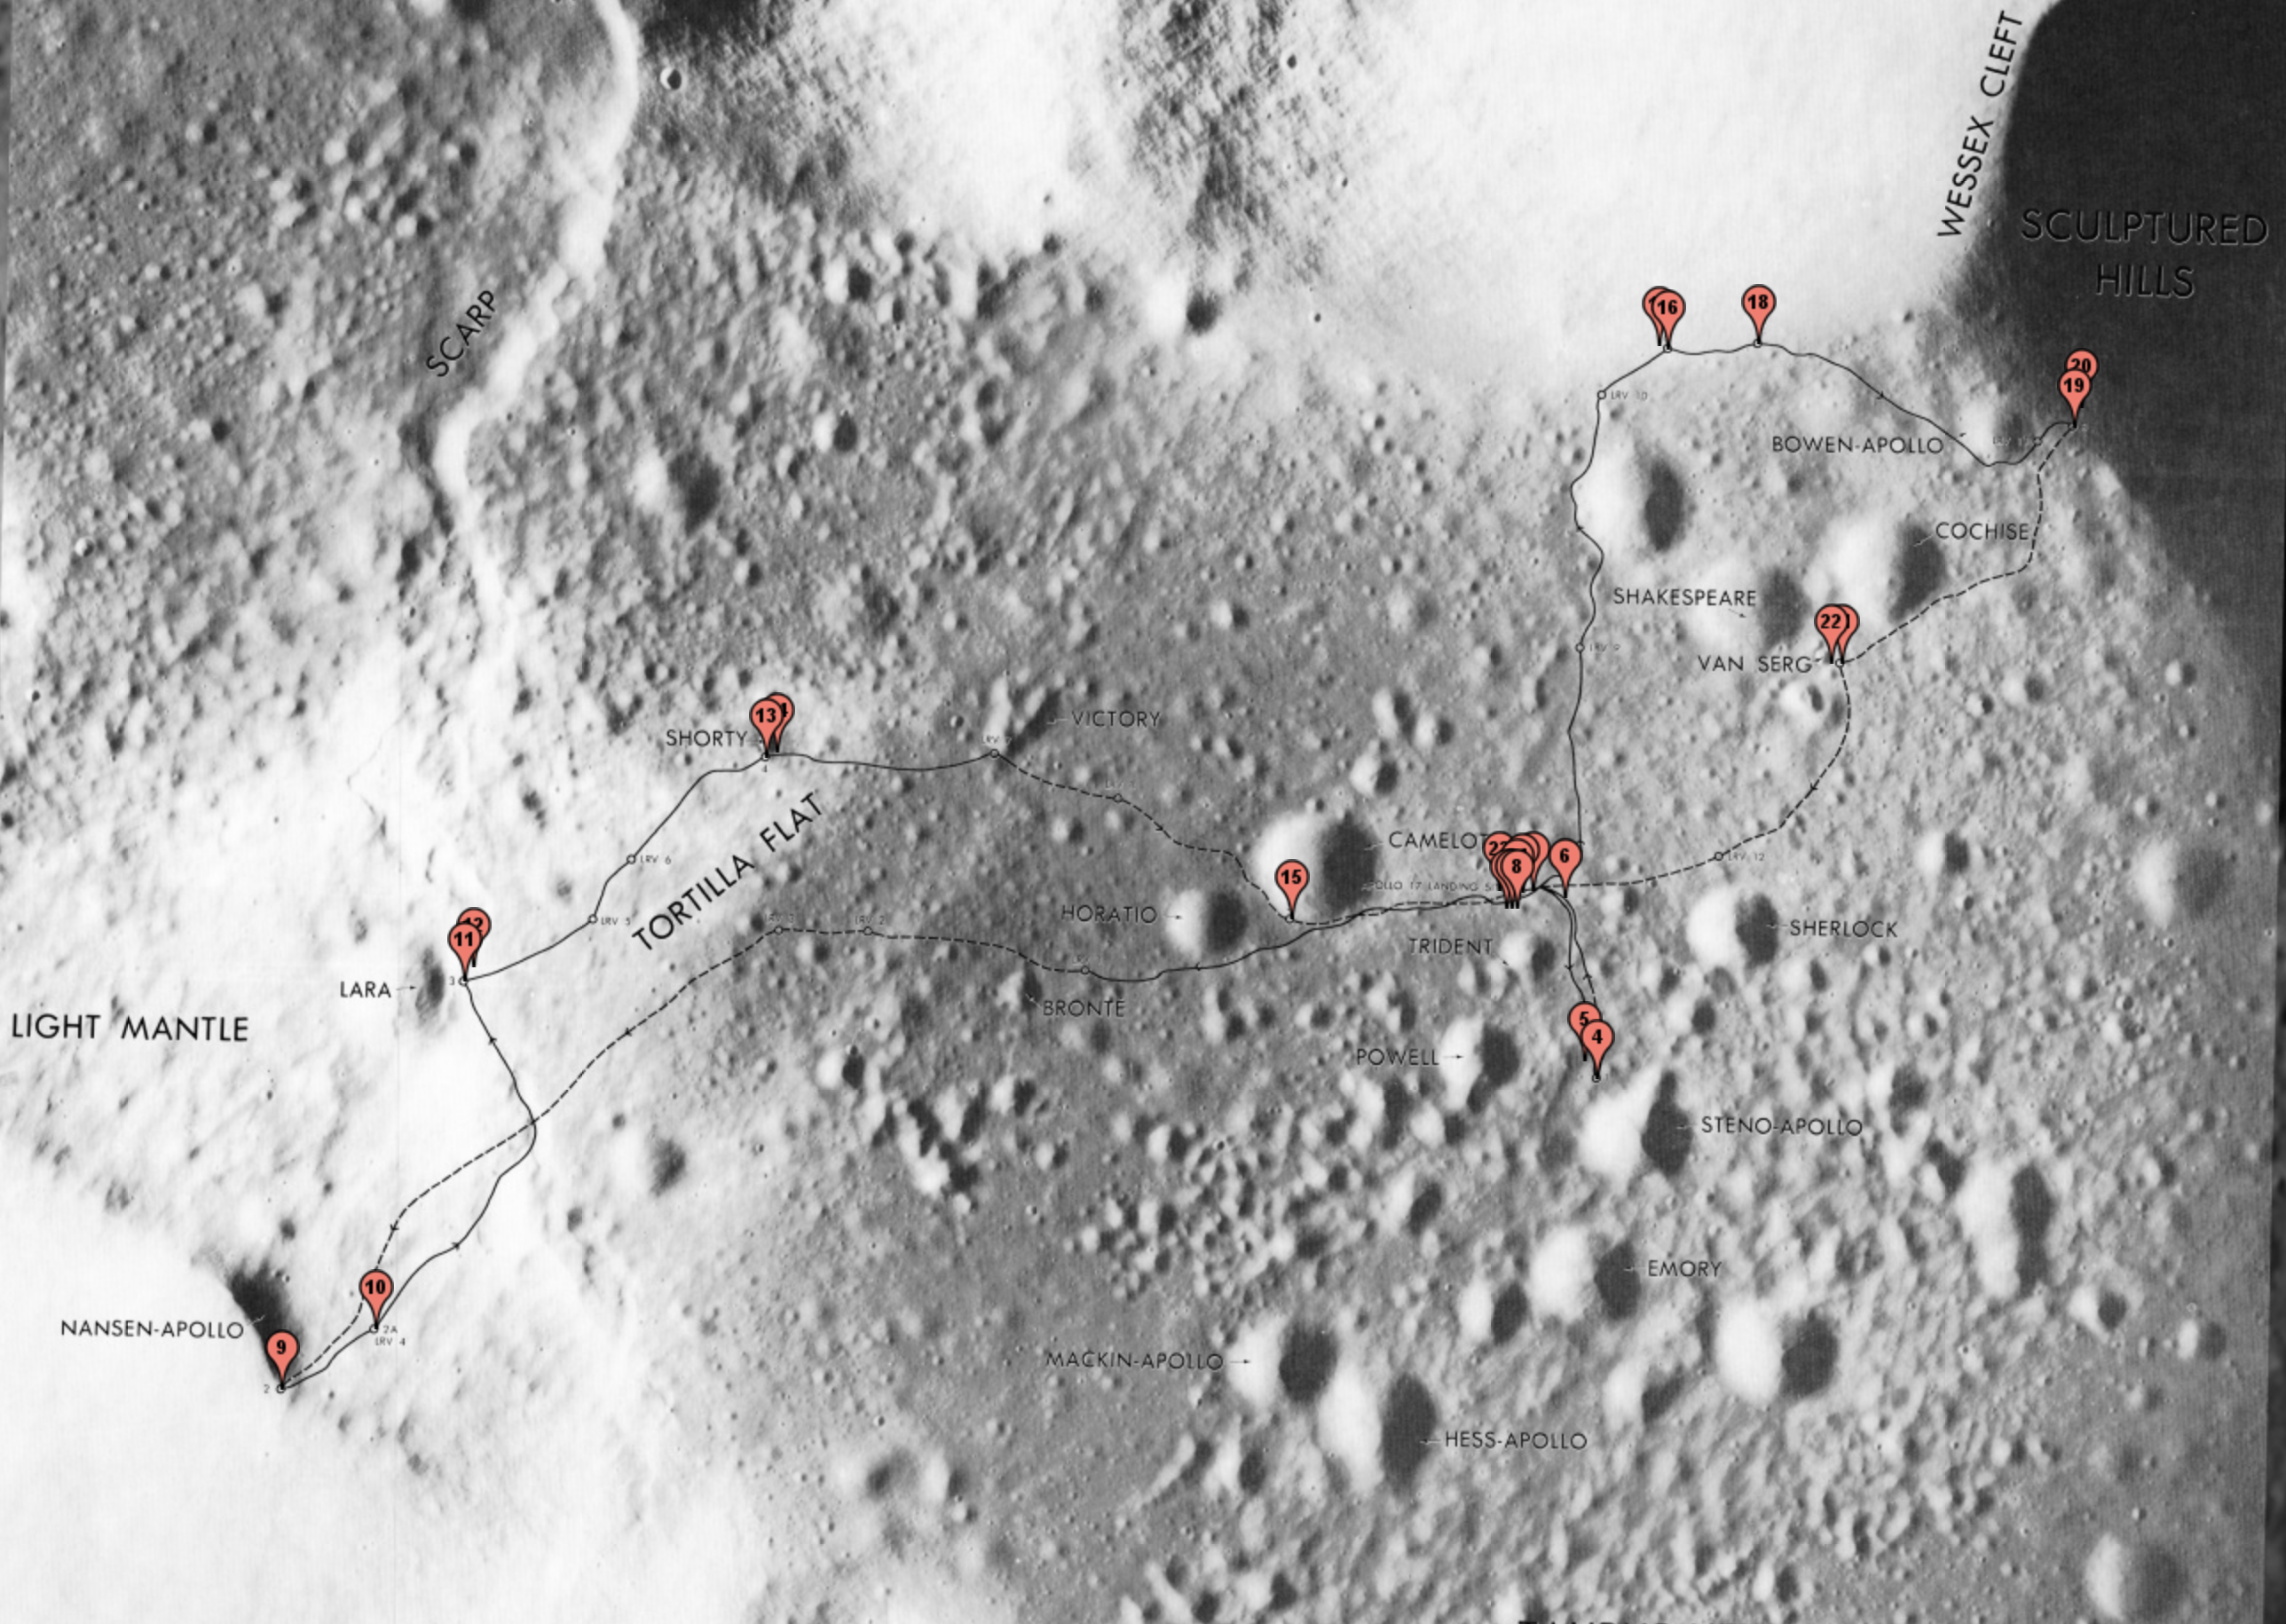 ../_images/apollo17-map.png